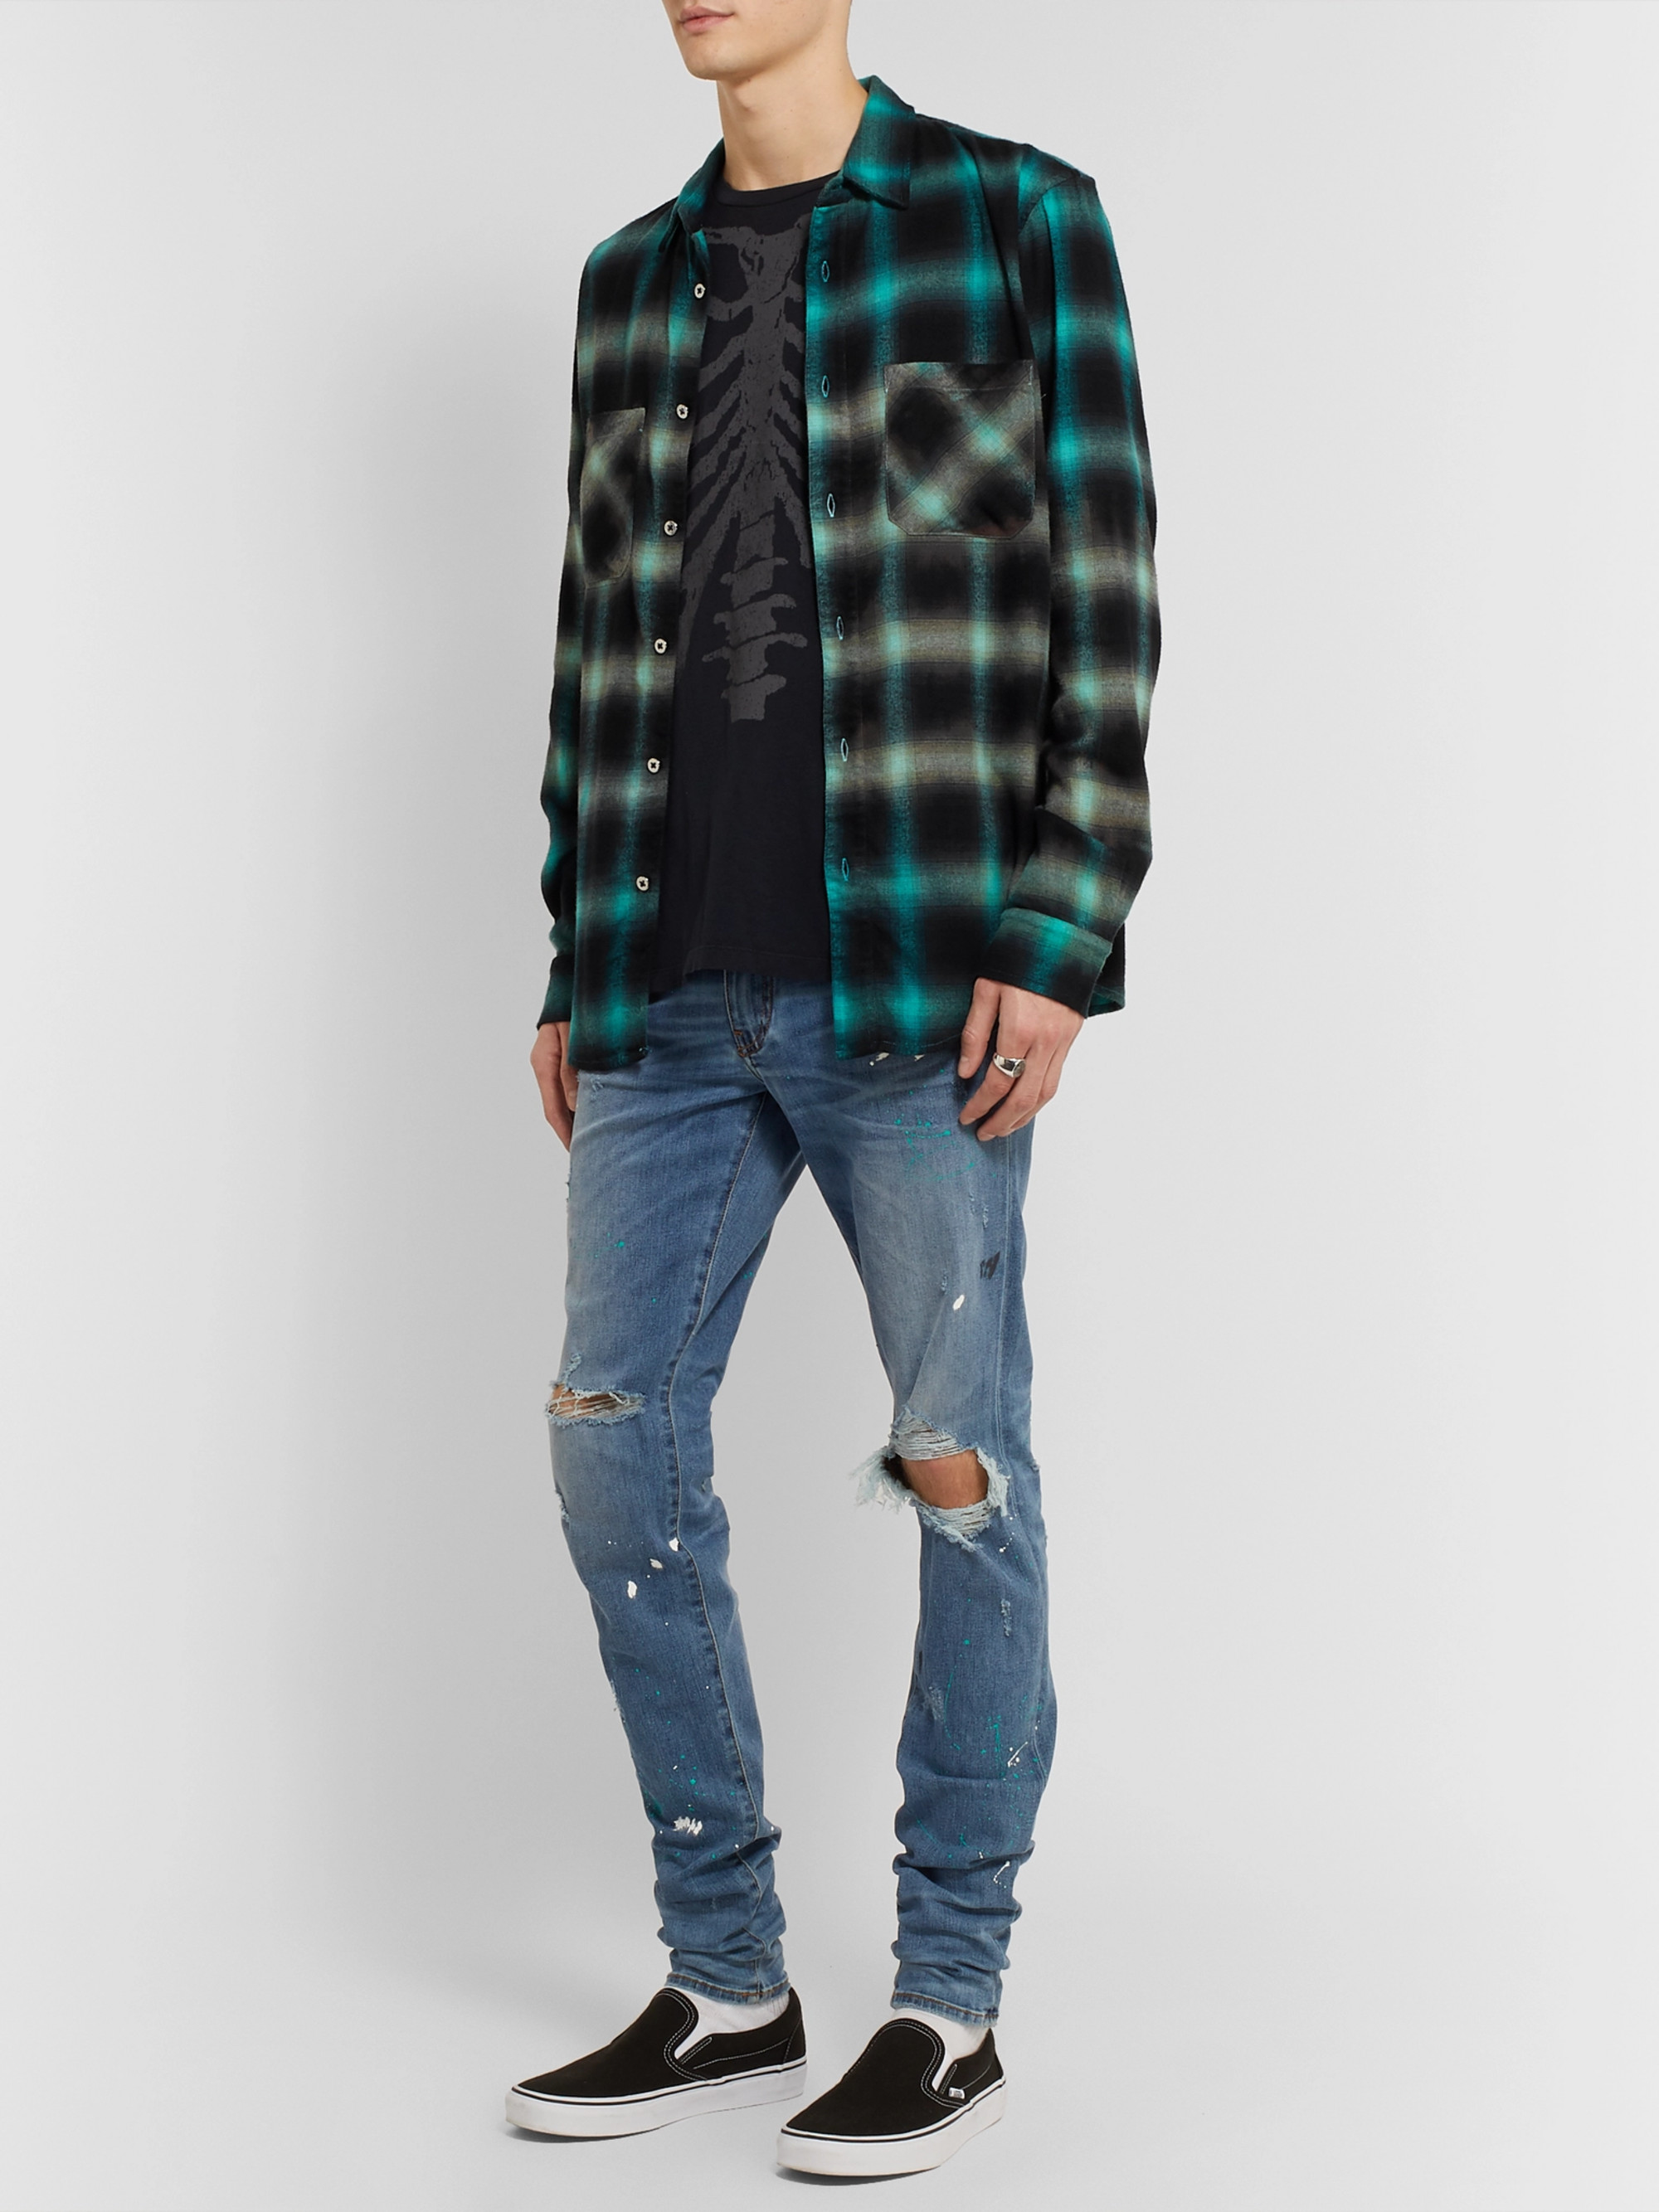 AMIRI Tie-Dyed Cotton-Blend Flannel Shirt